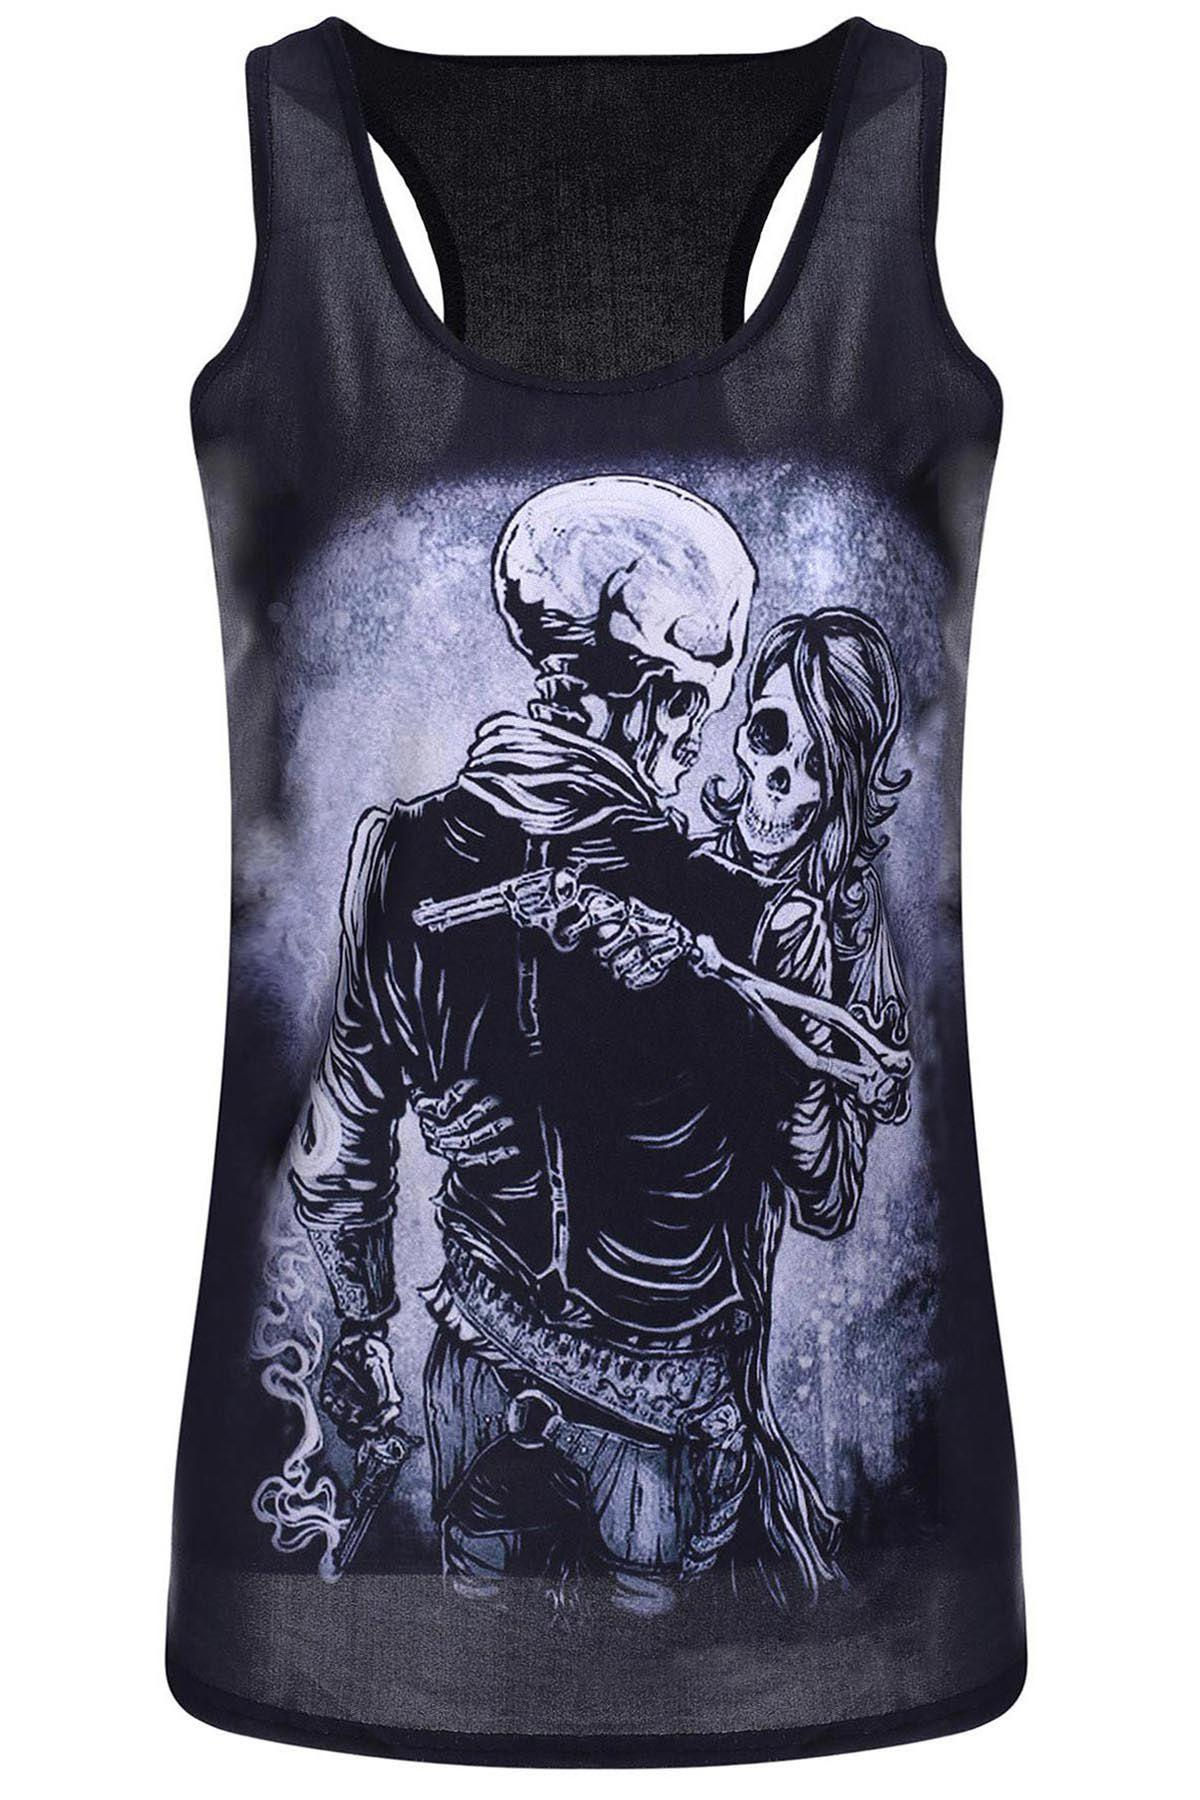 Trendy Sleeveless U Neck Skull Print Women's Tank Top - BLACK ONE SIZE(FIT SIZE XS TO M)